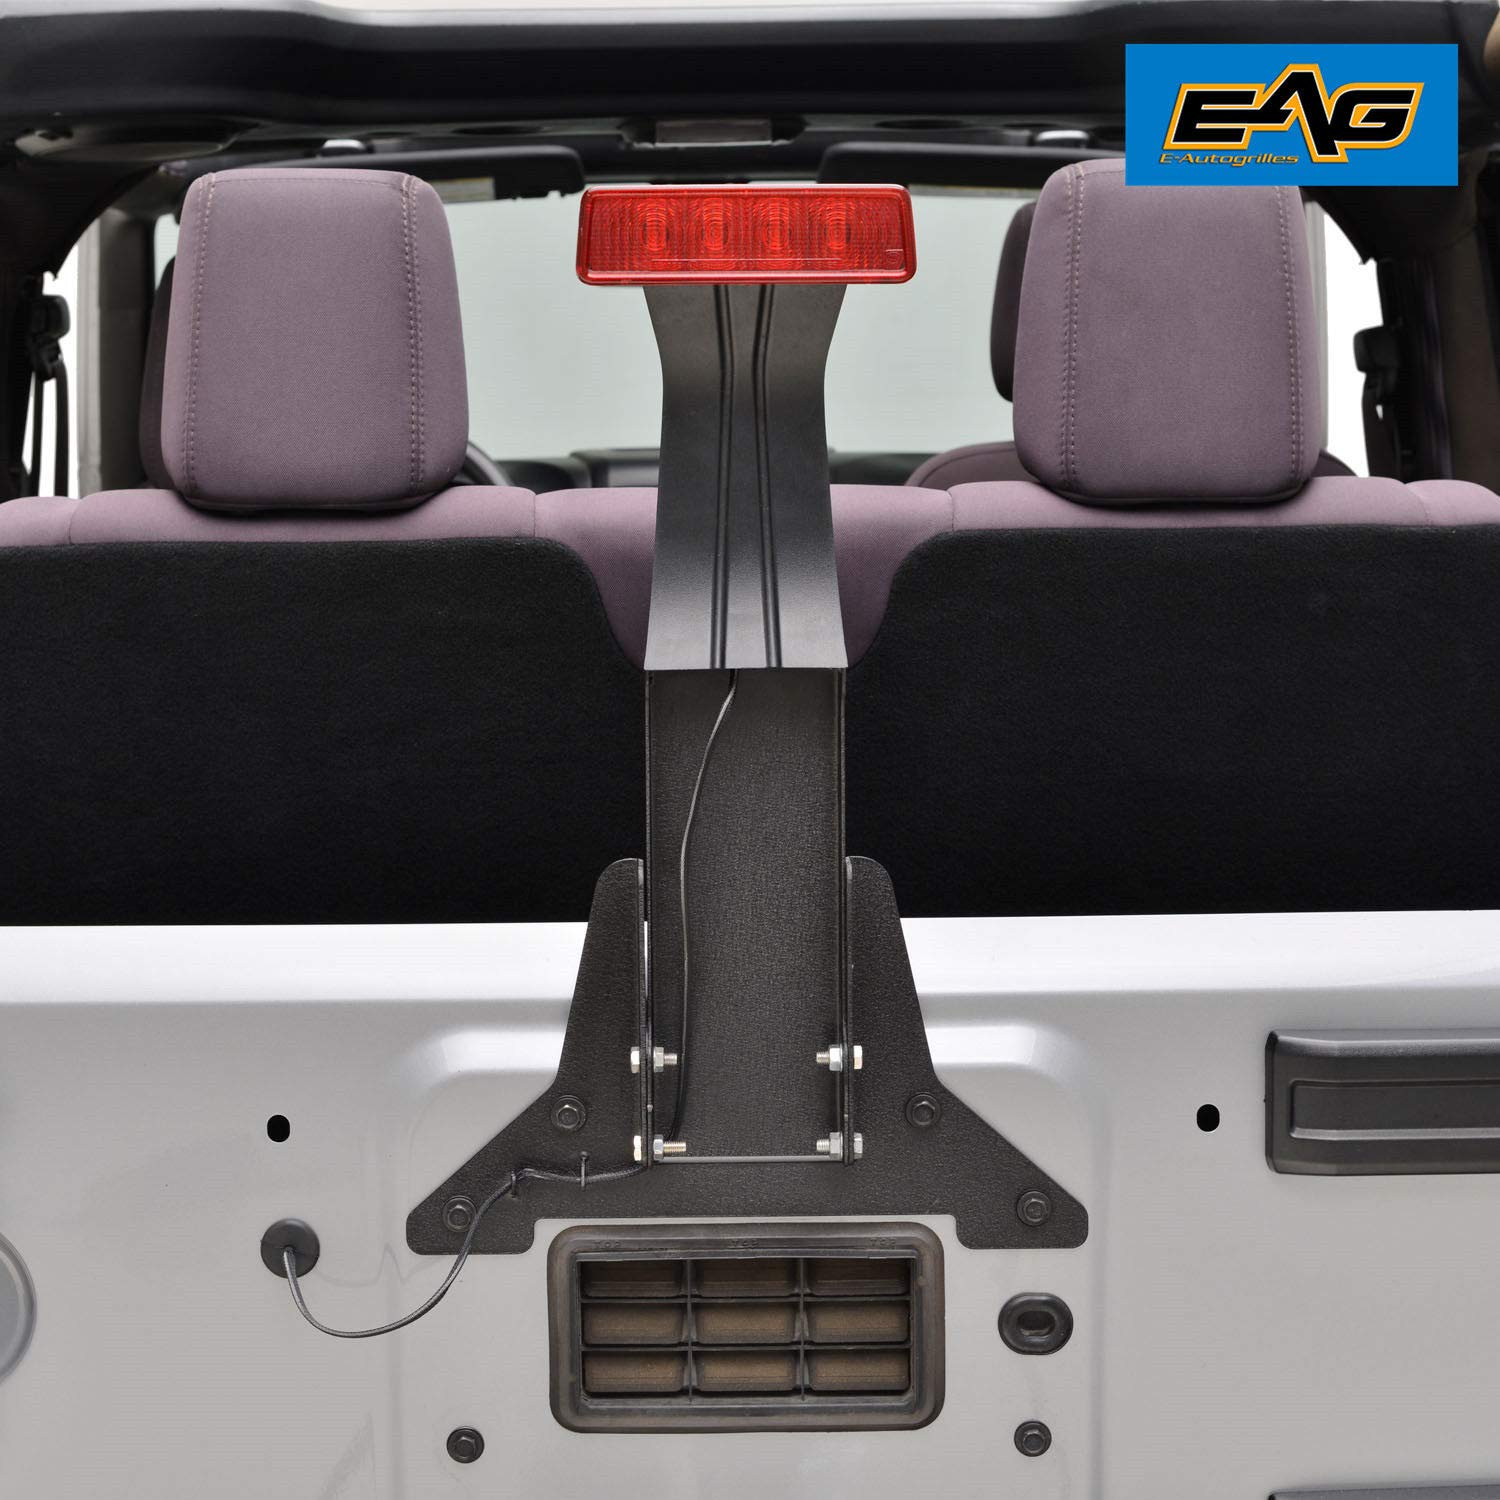 amazon com: e-autogrilles third brake light mounting bracket and extension wire  harness for 07-17 jeep wrangler jk: automotive